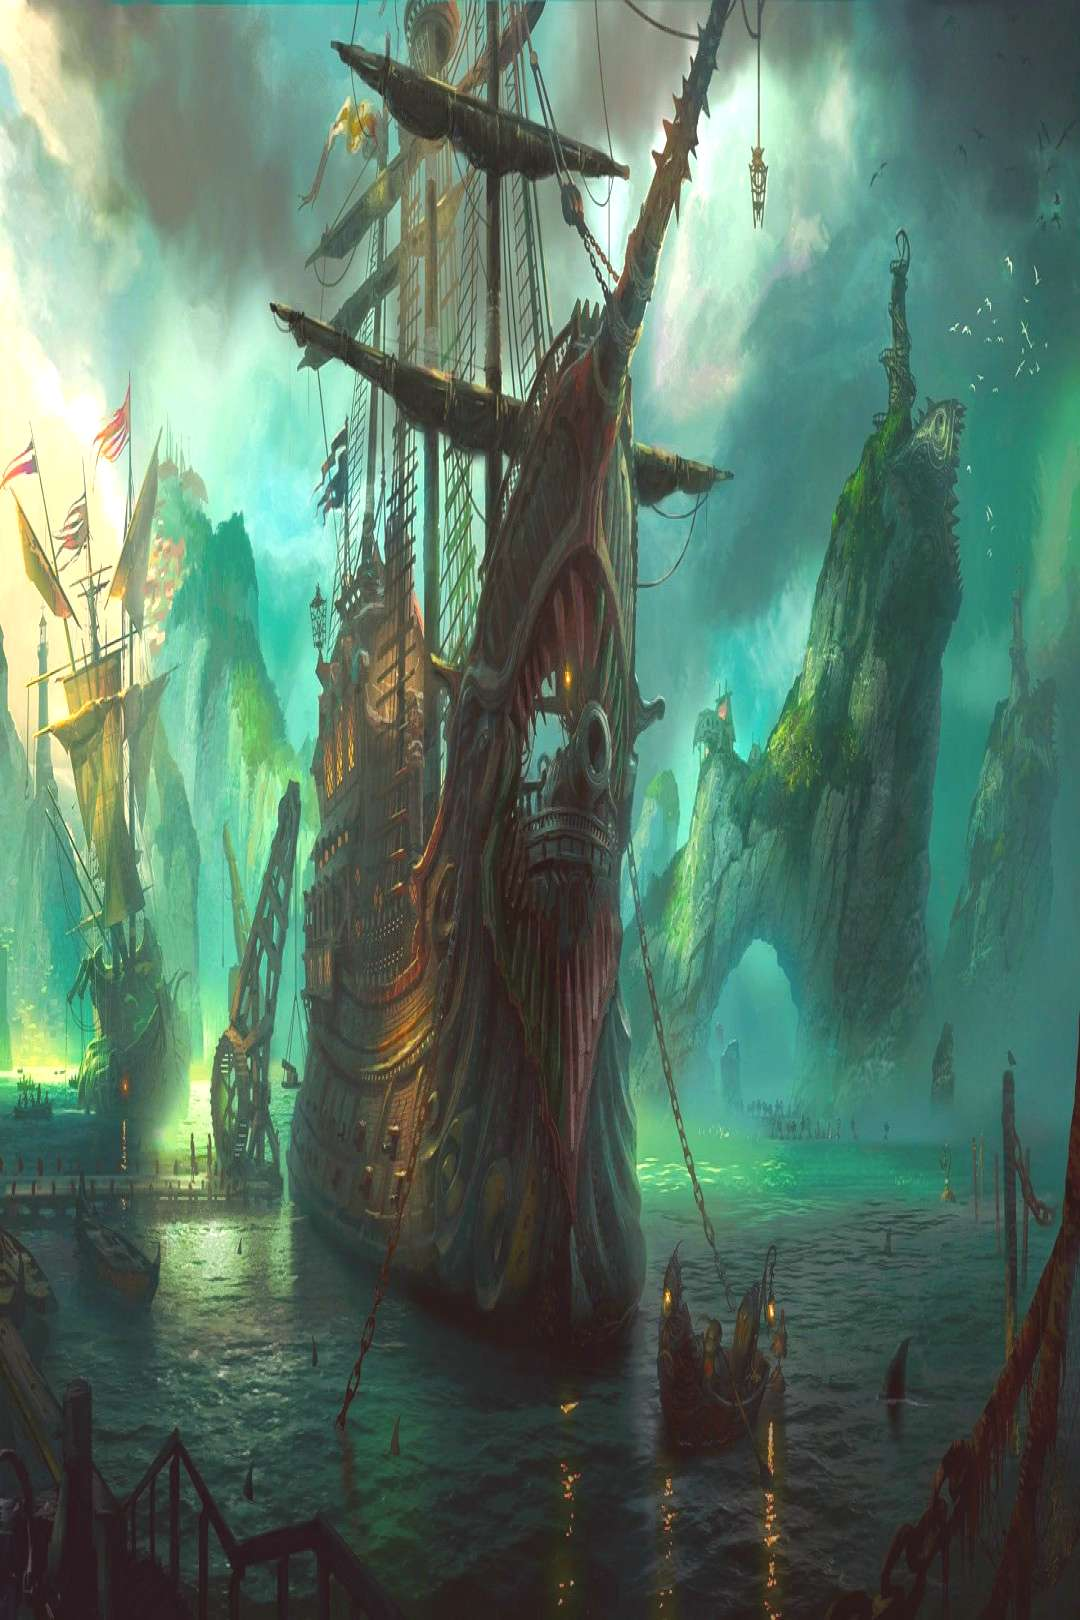 brown and black pirate ship League of Legends fantasy art